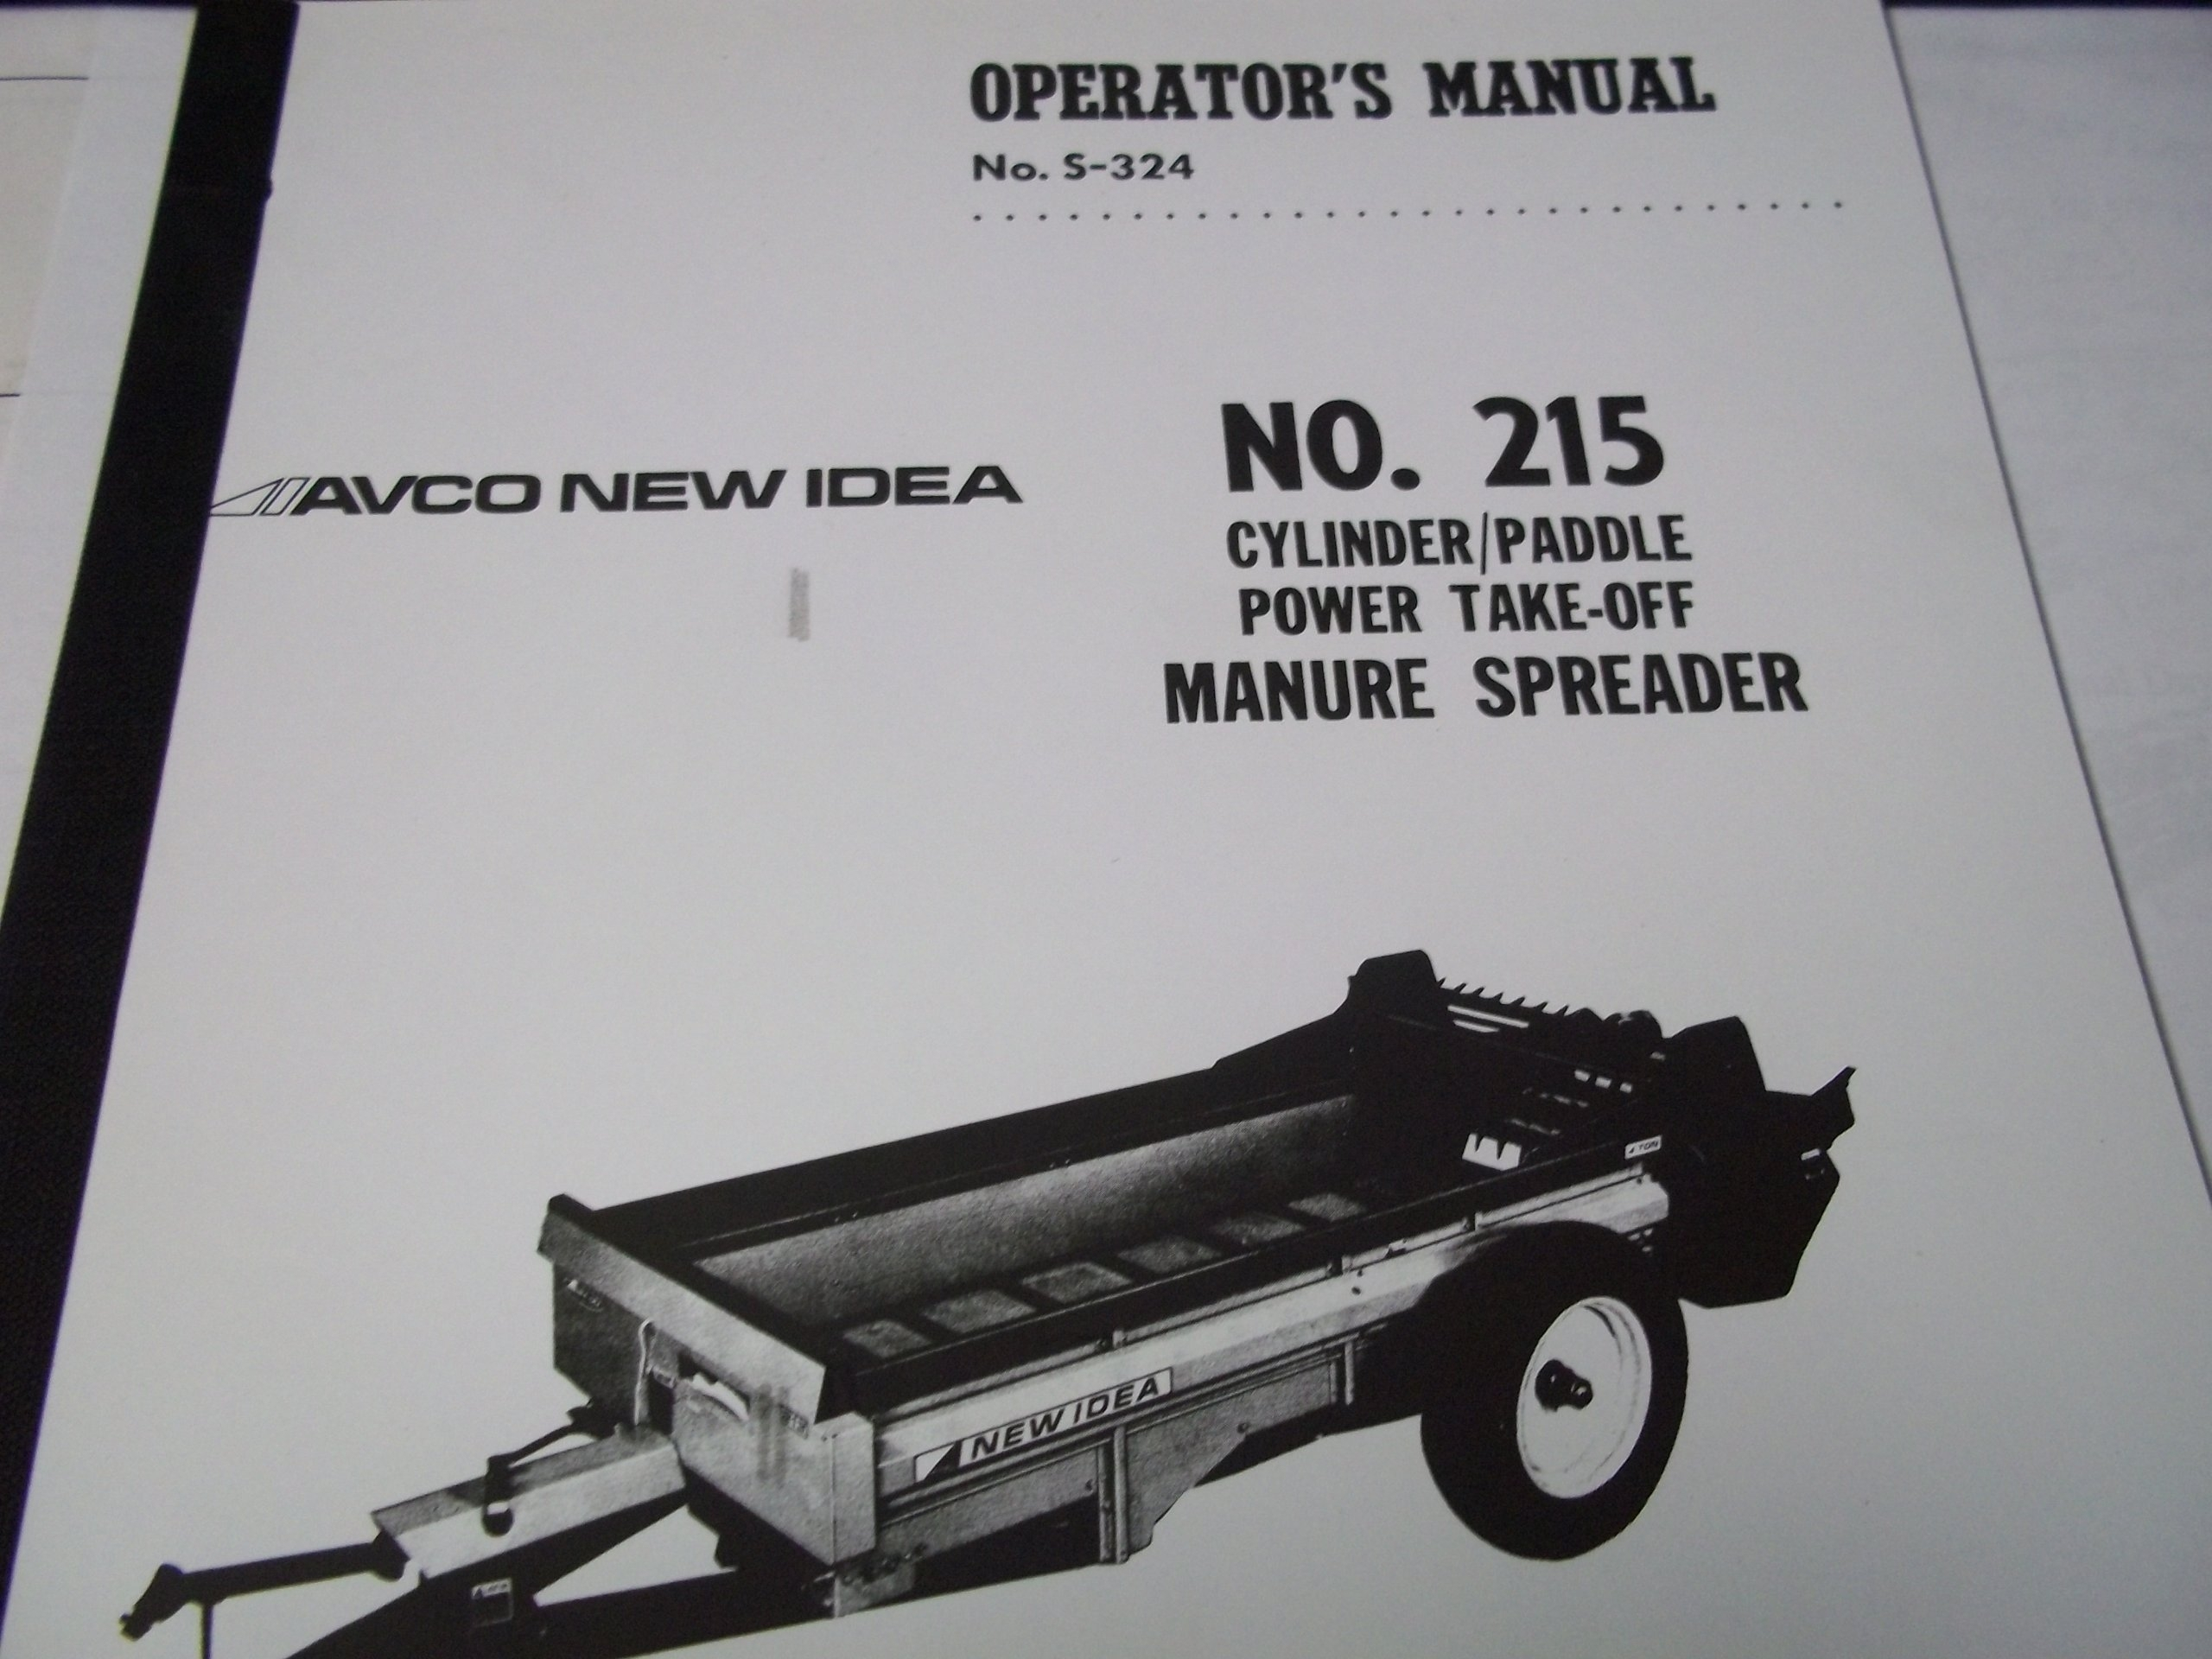 buy new idea 11 manure spreader parts manual in cheap price on